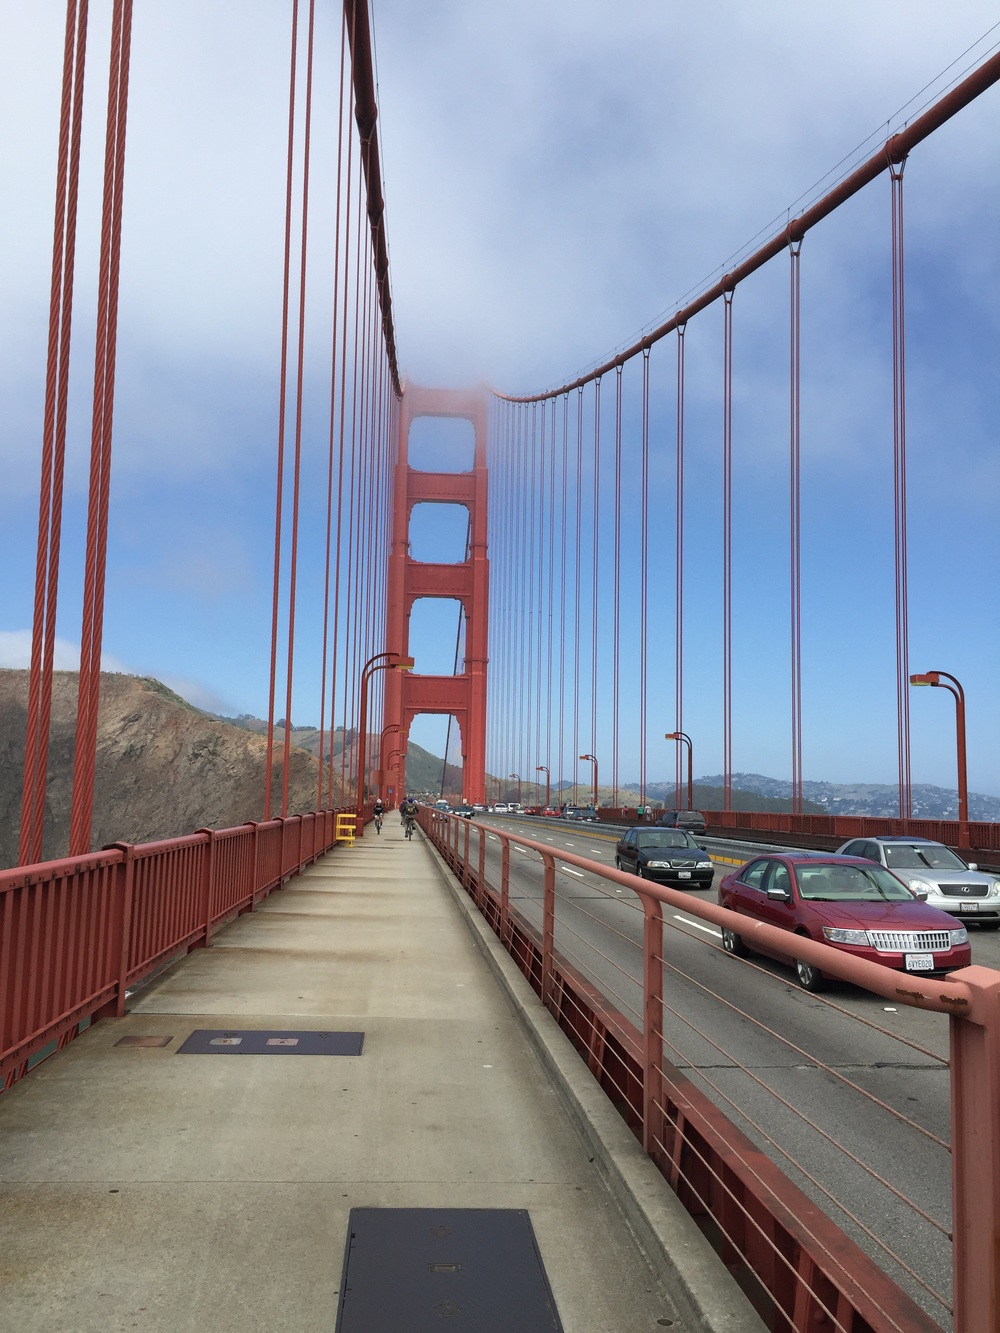 GGB - standing tall and strong